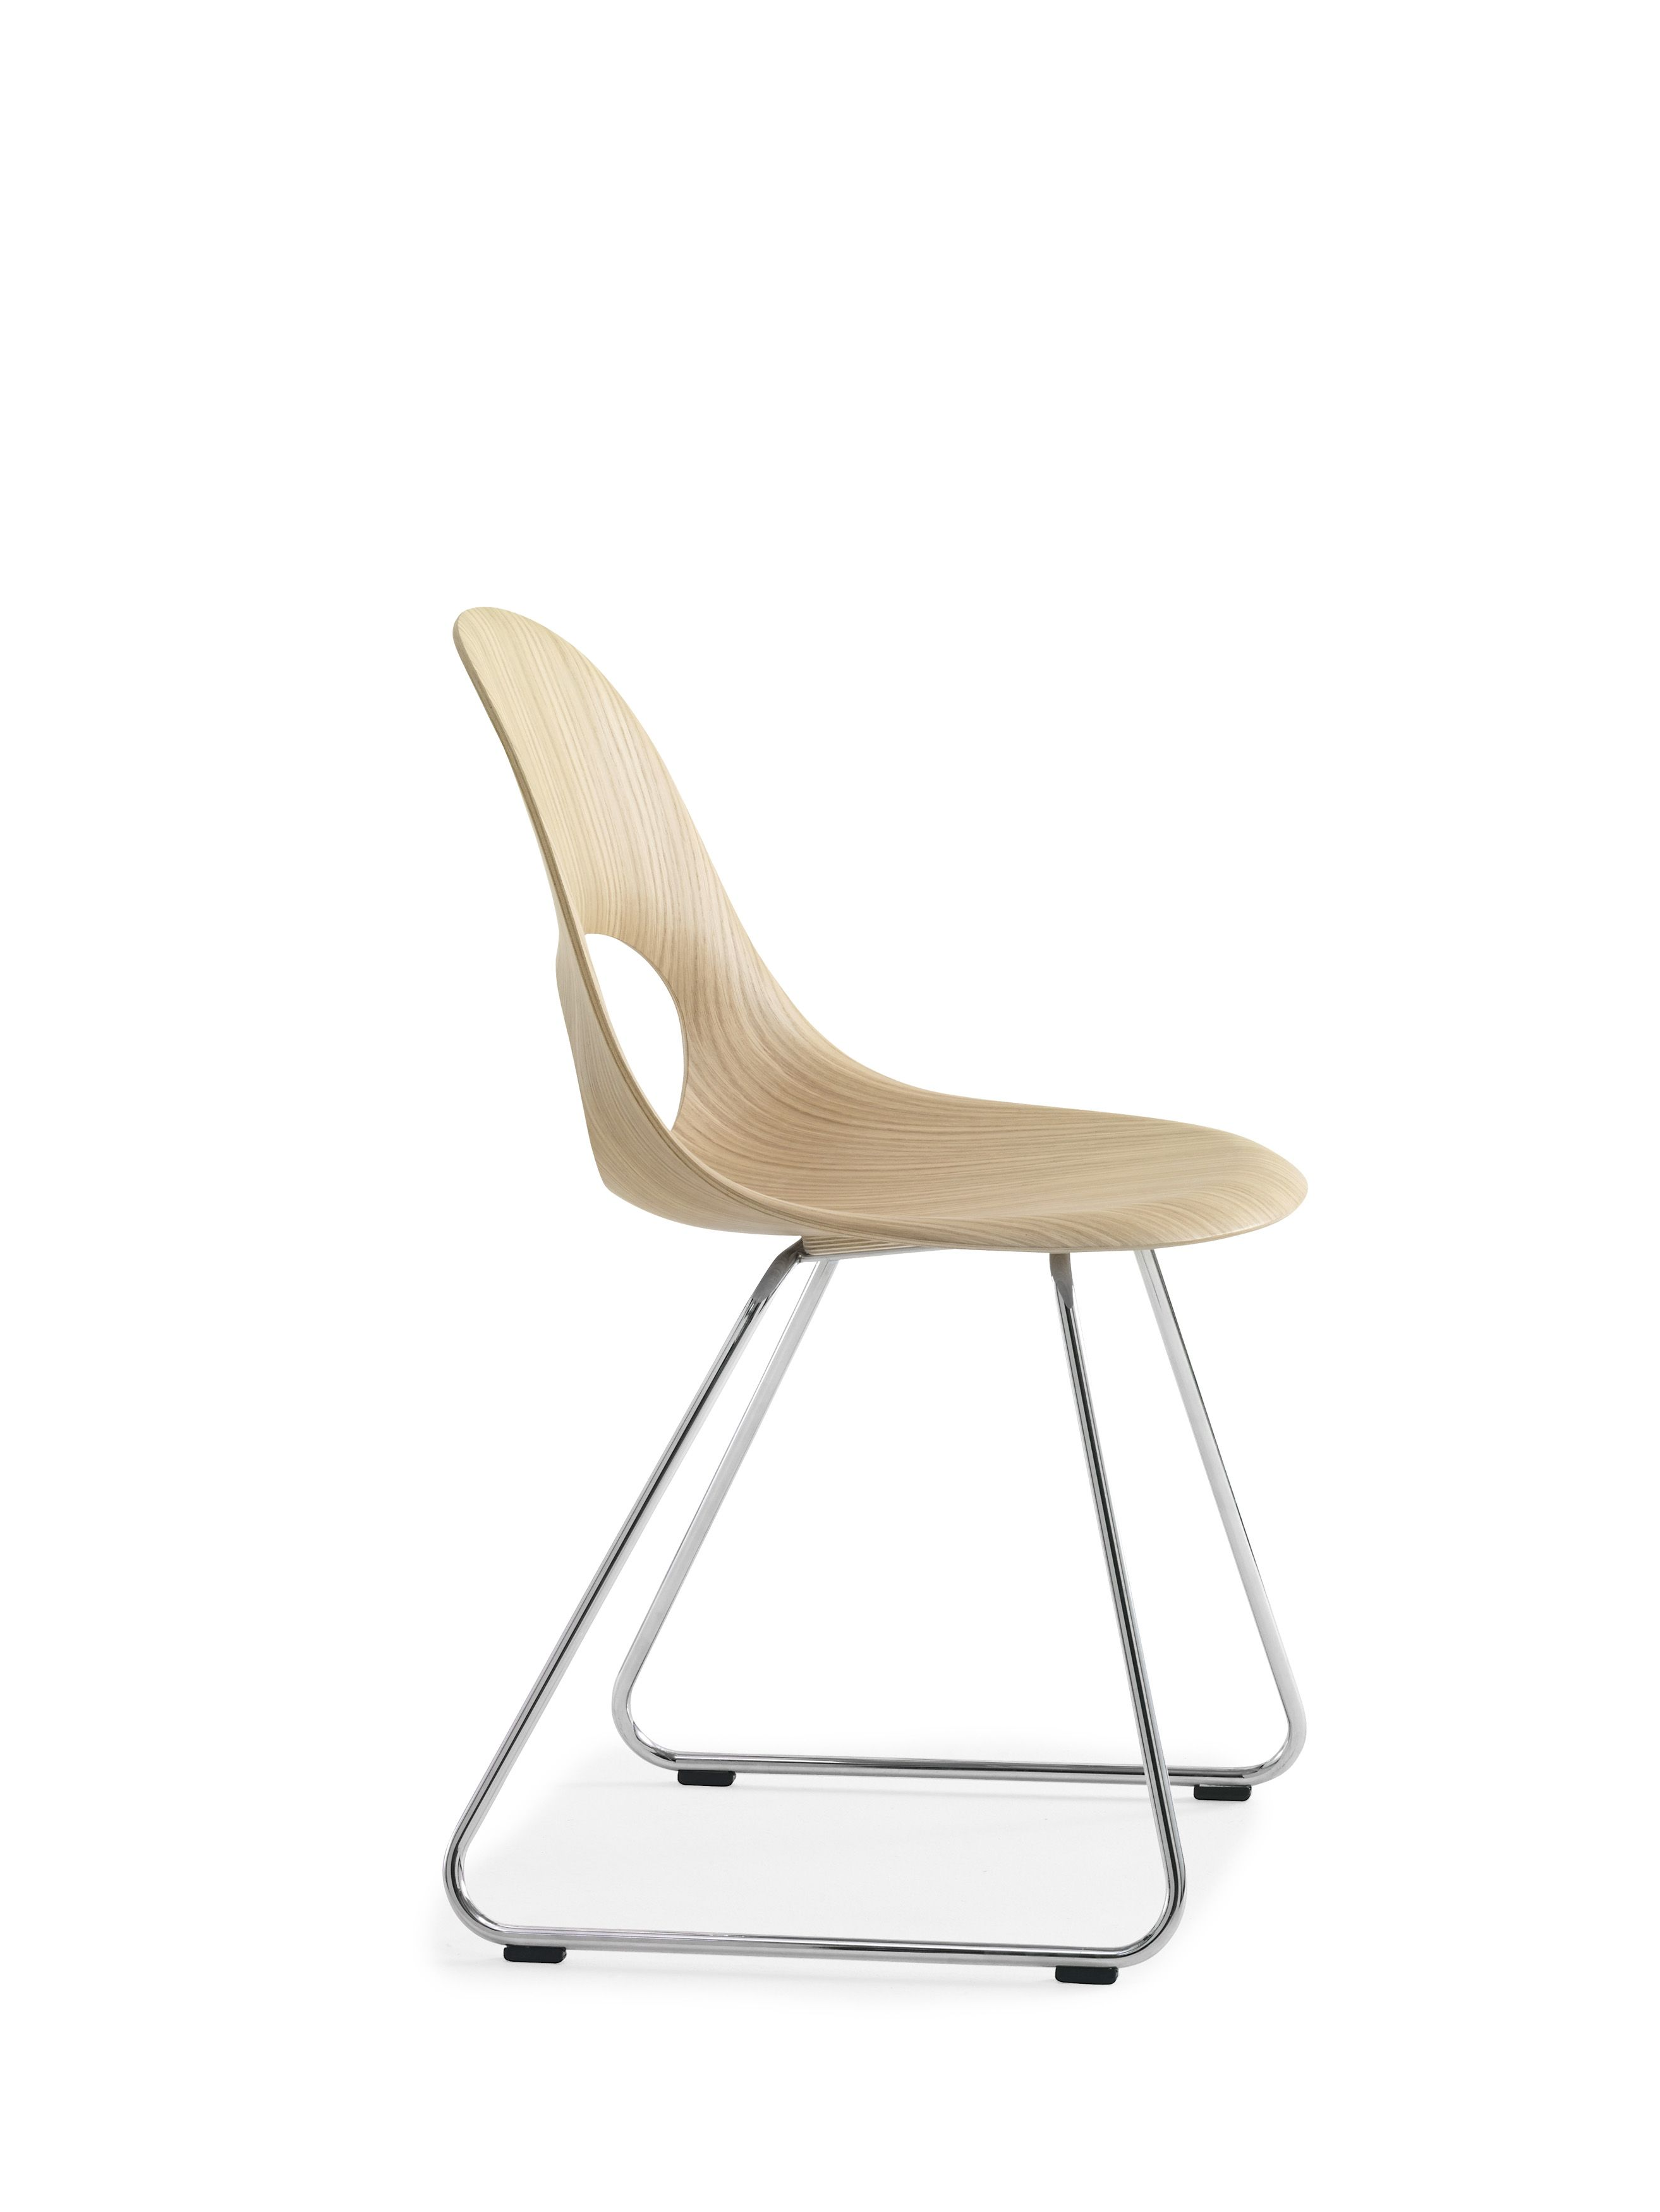 This SayO MiniLux Chair in raw wood with metal legs. May be acquired with different types of wood veneer. Find out more at www.sayo.dk.